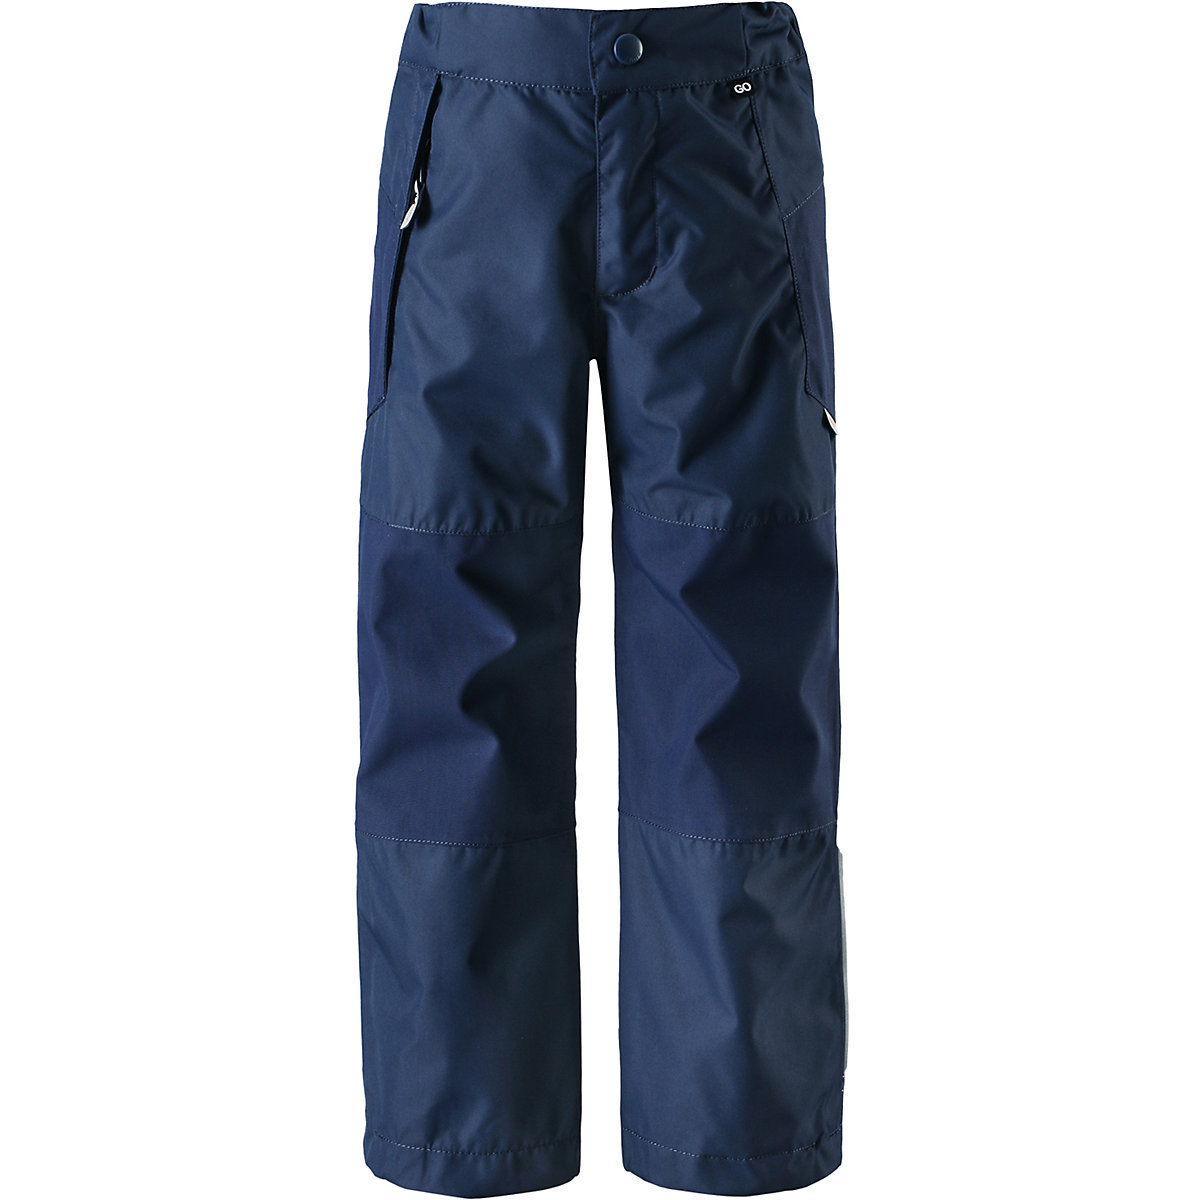 Pants & Capris Reima 8739588 for boys and girls polyester autumn winter monton 113129289 outdoor cycling polyester short pants for men black l